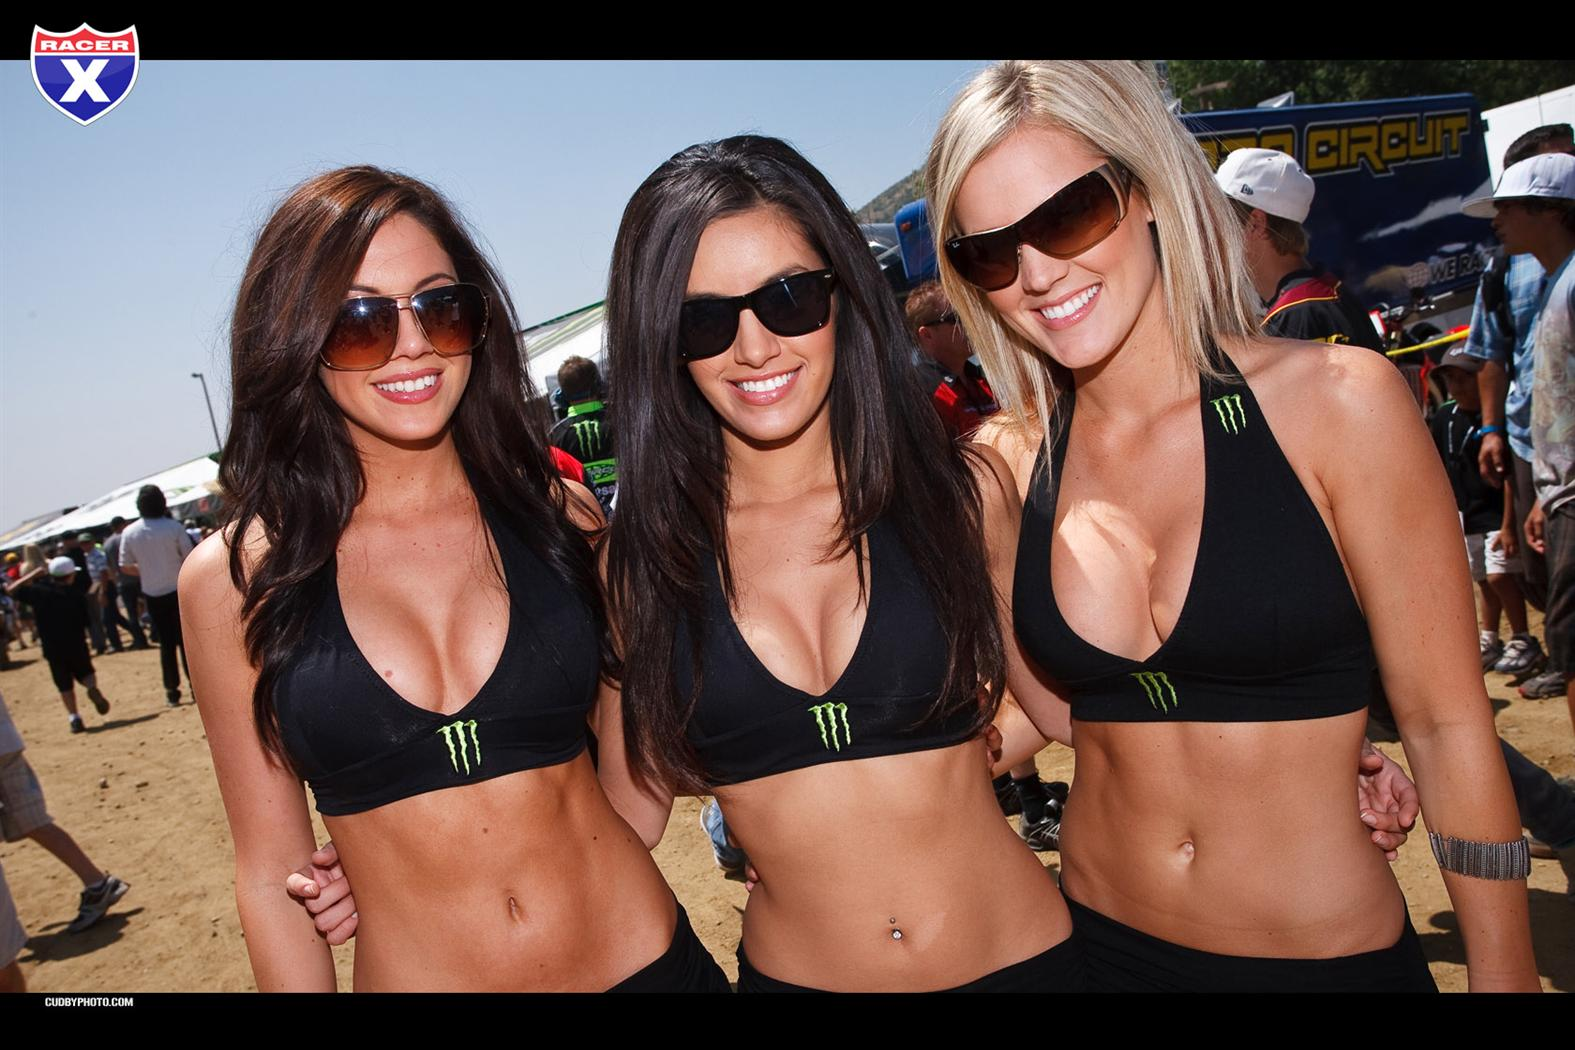 Naked monster energy girls xxx girls